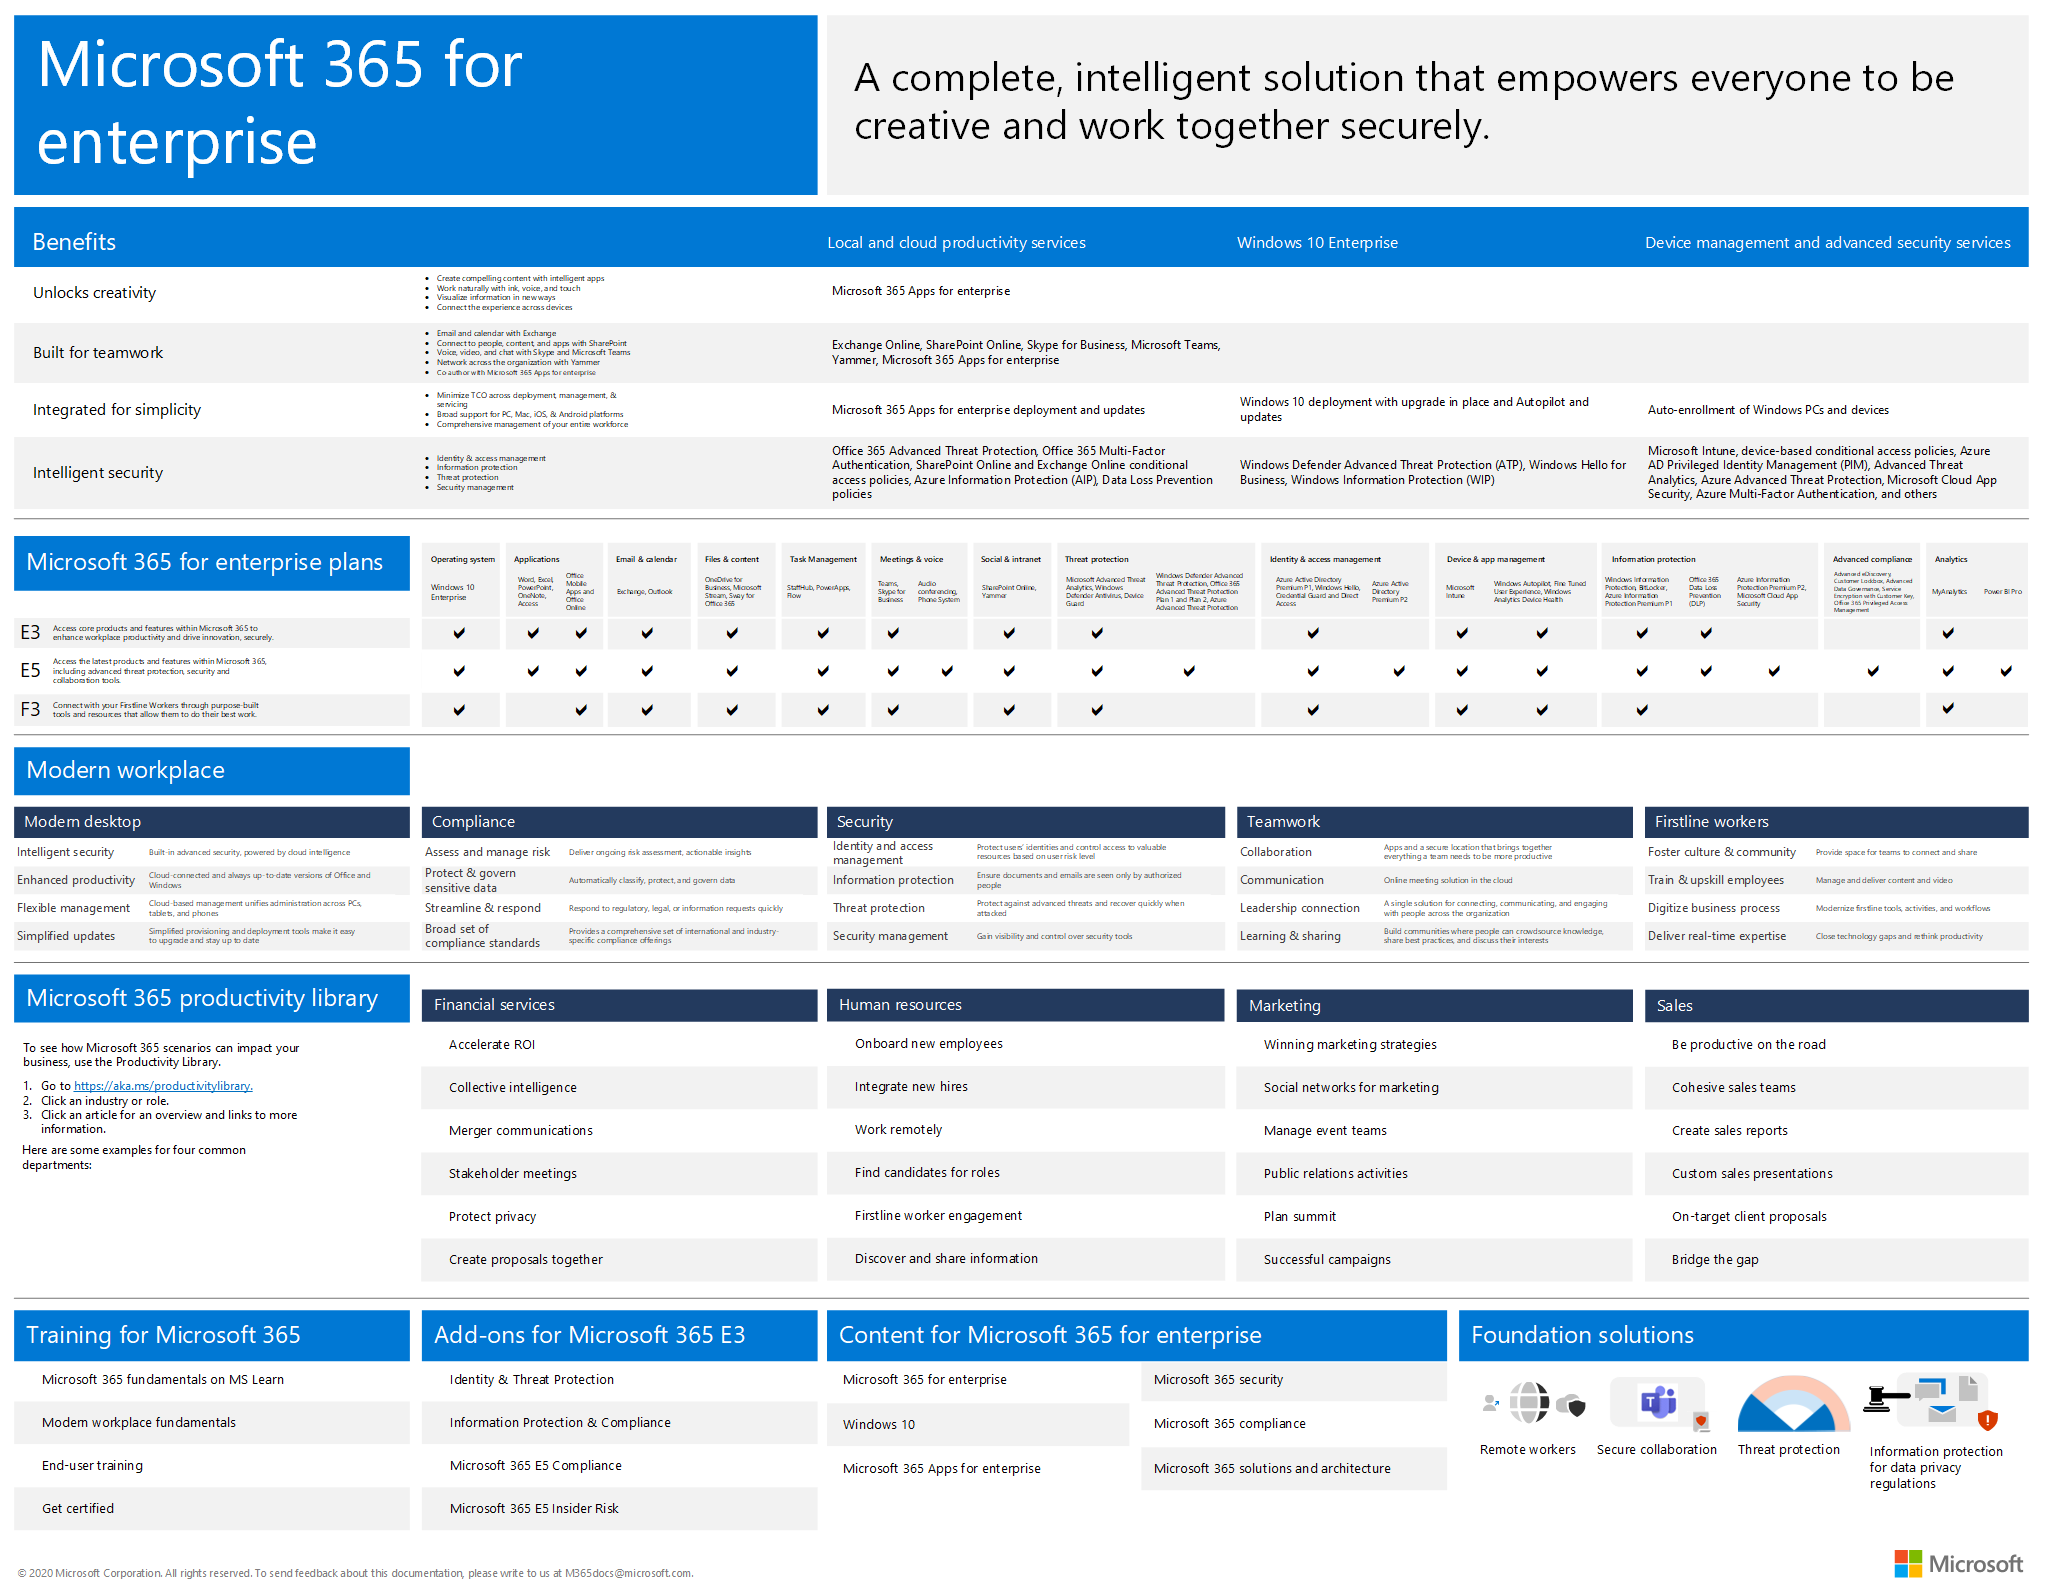 Image for the Microsoft 365 for enterprise poster